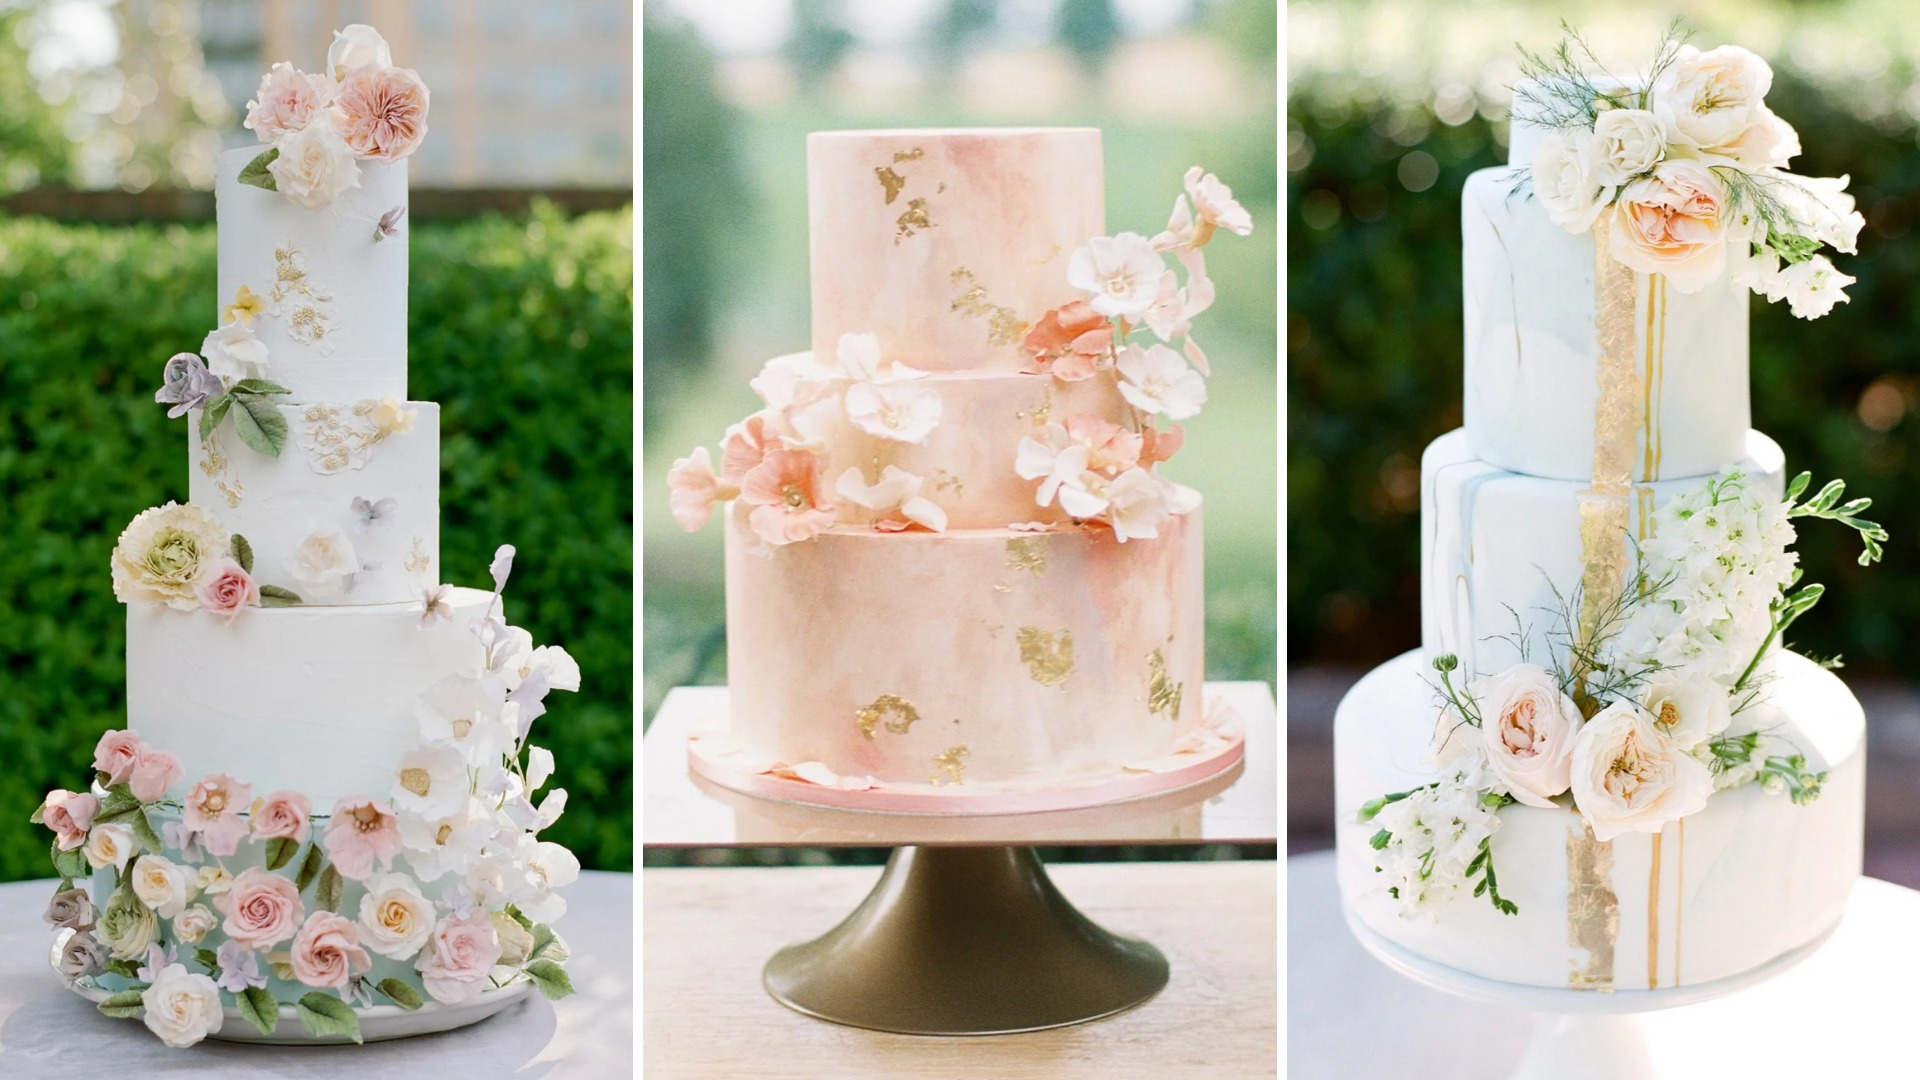 Wedding cakes, gâteaux de mariage - Wedding Planner Reims - Perfect Moment by A